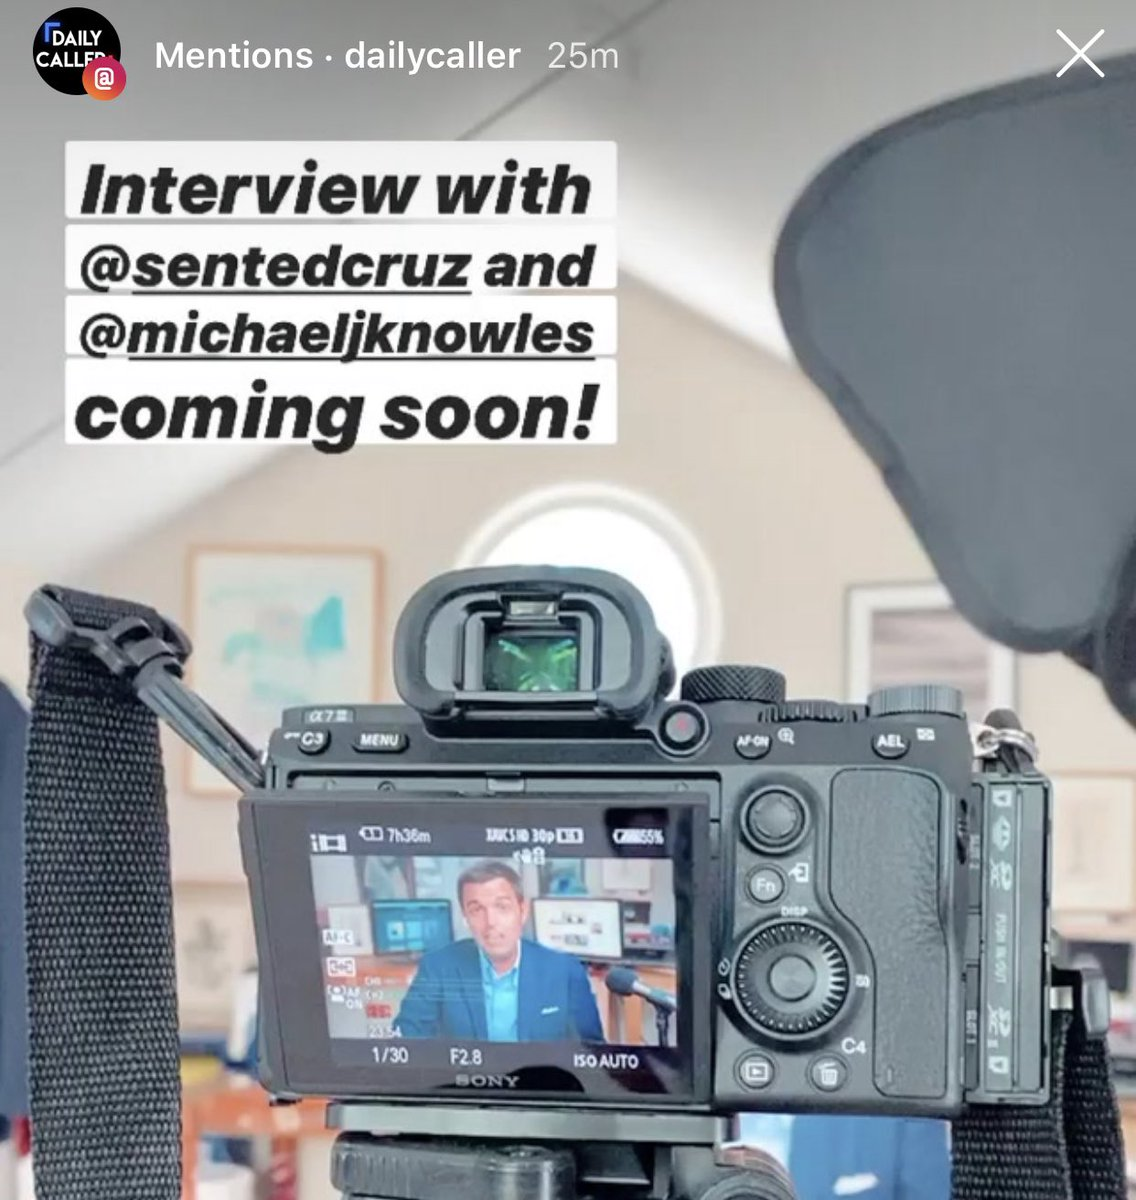 Just had a great interview with @TedCruz & @michaeljknowles.   Check out their podcast, #Verdict, and look for news from the interview soon on @DailyCaller